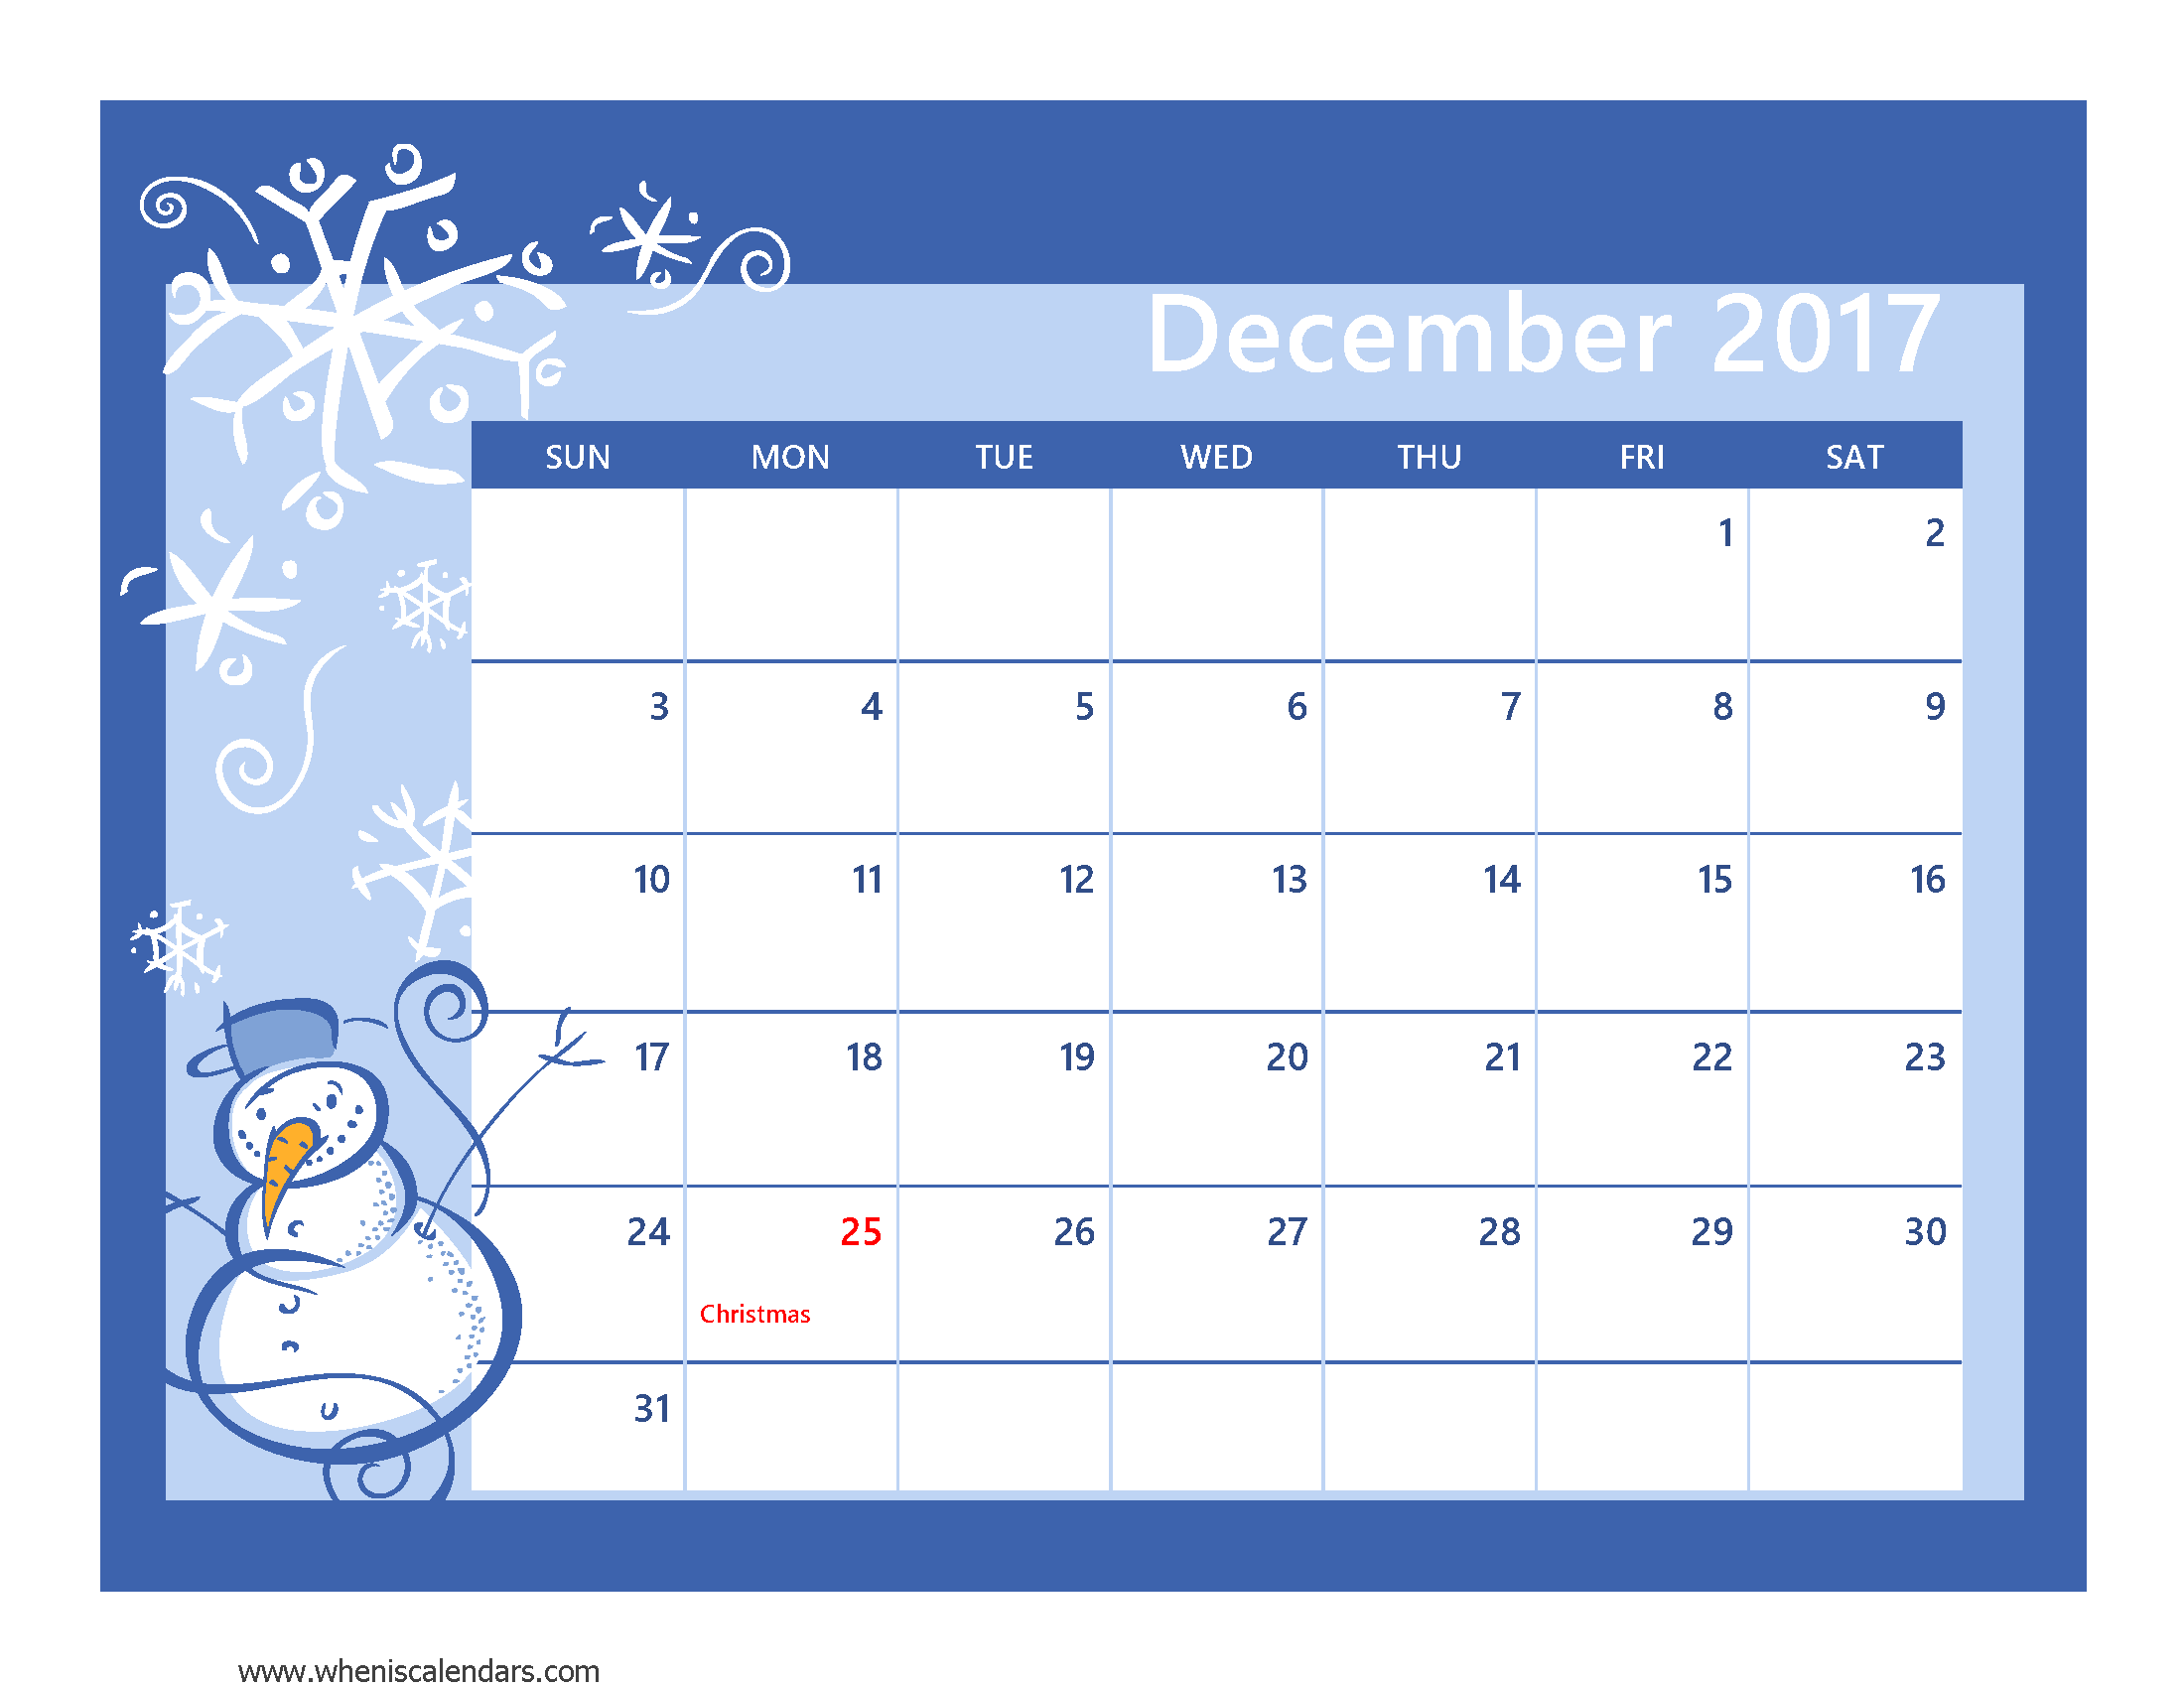 2017 Calendar Printable With Holidays December 2017 Calendar